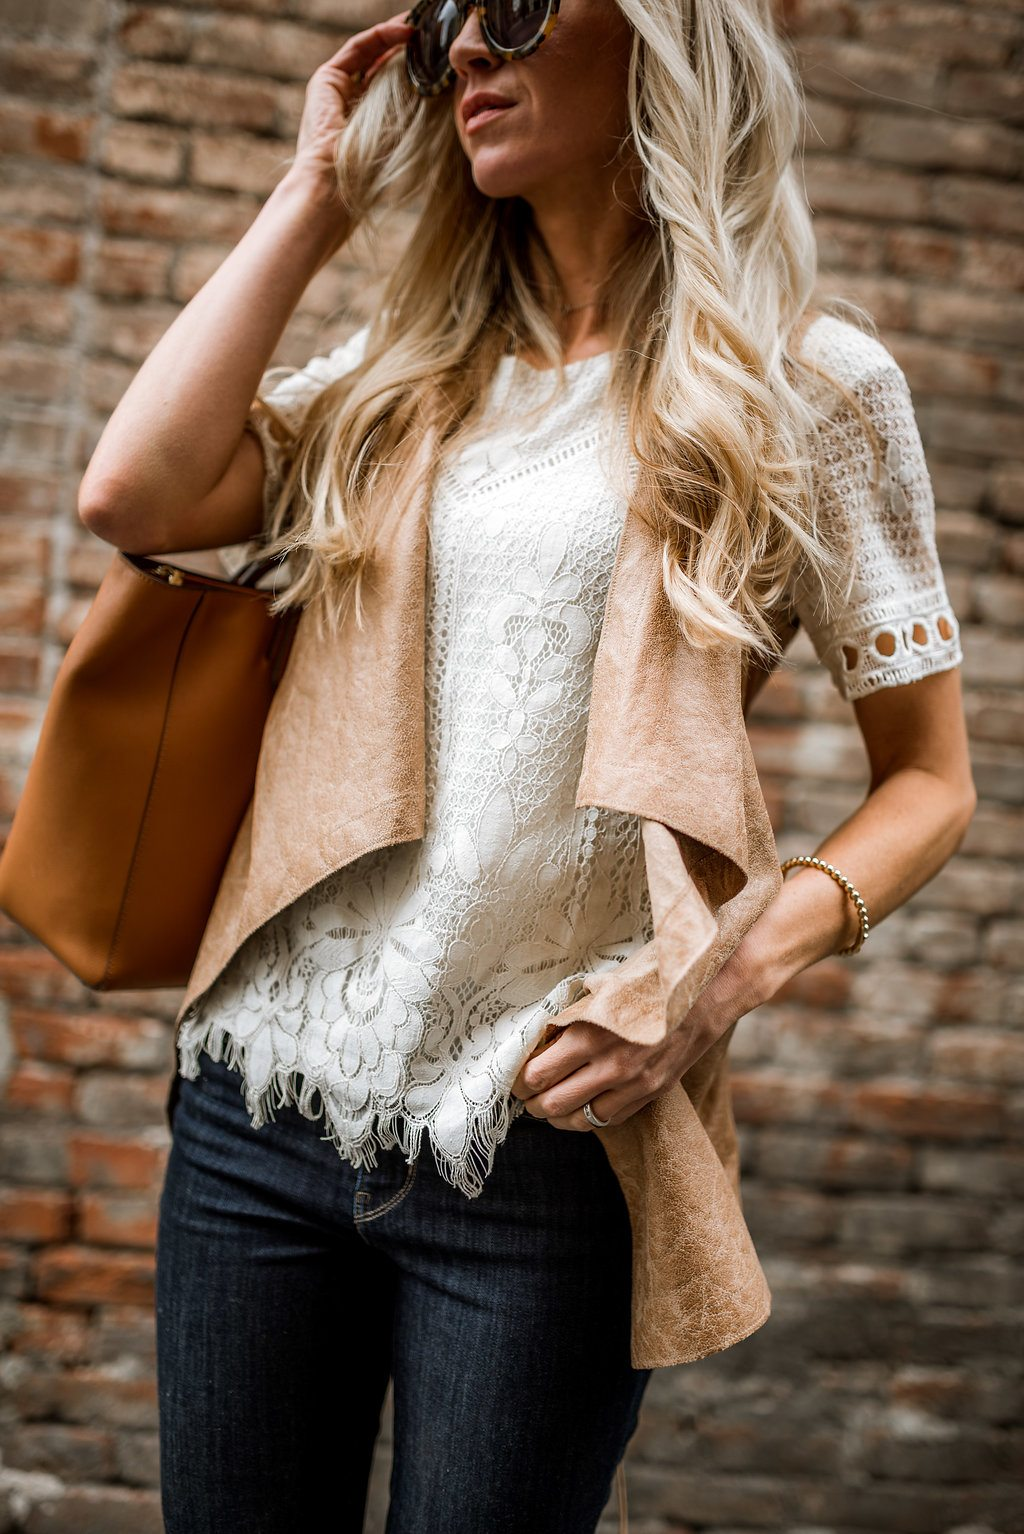 Lace Leather Elle Apparel By Leanne Barlow